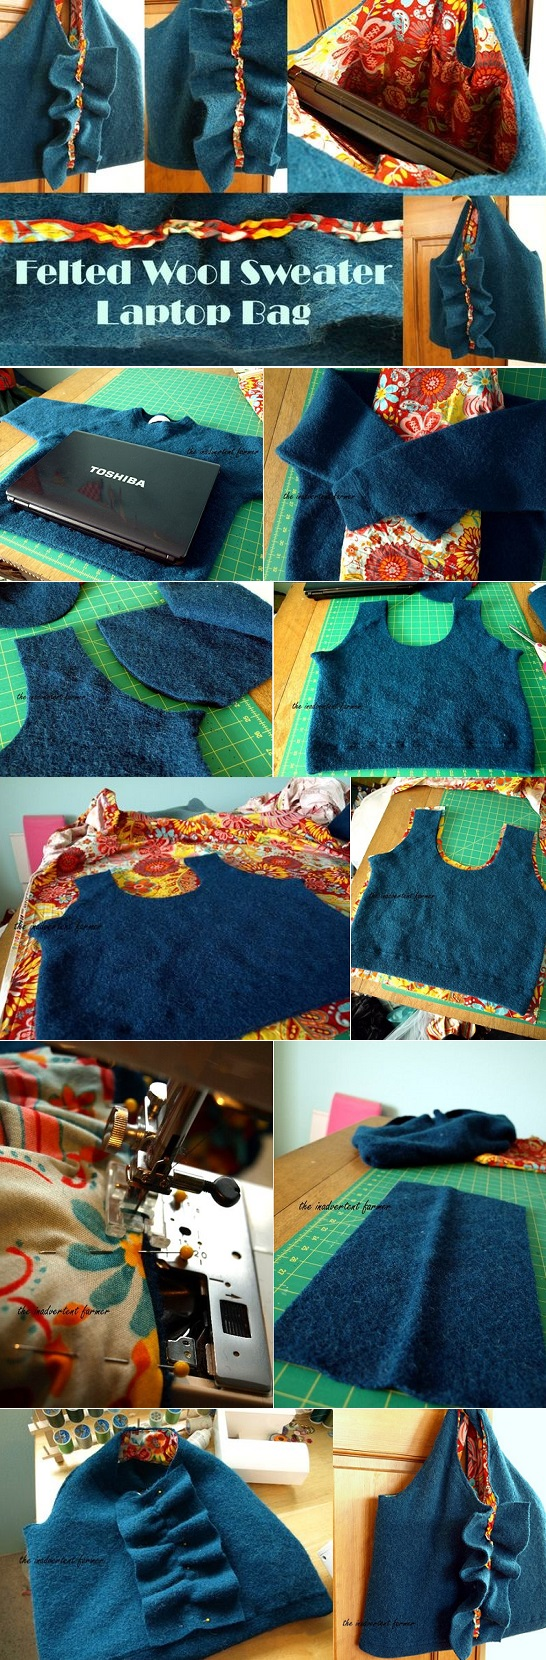 Turn an old Felted Wool Sweater into a Laptop Bag Case - DIY (2)